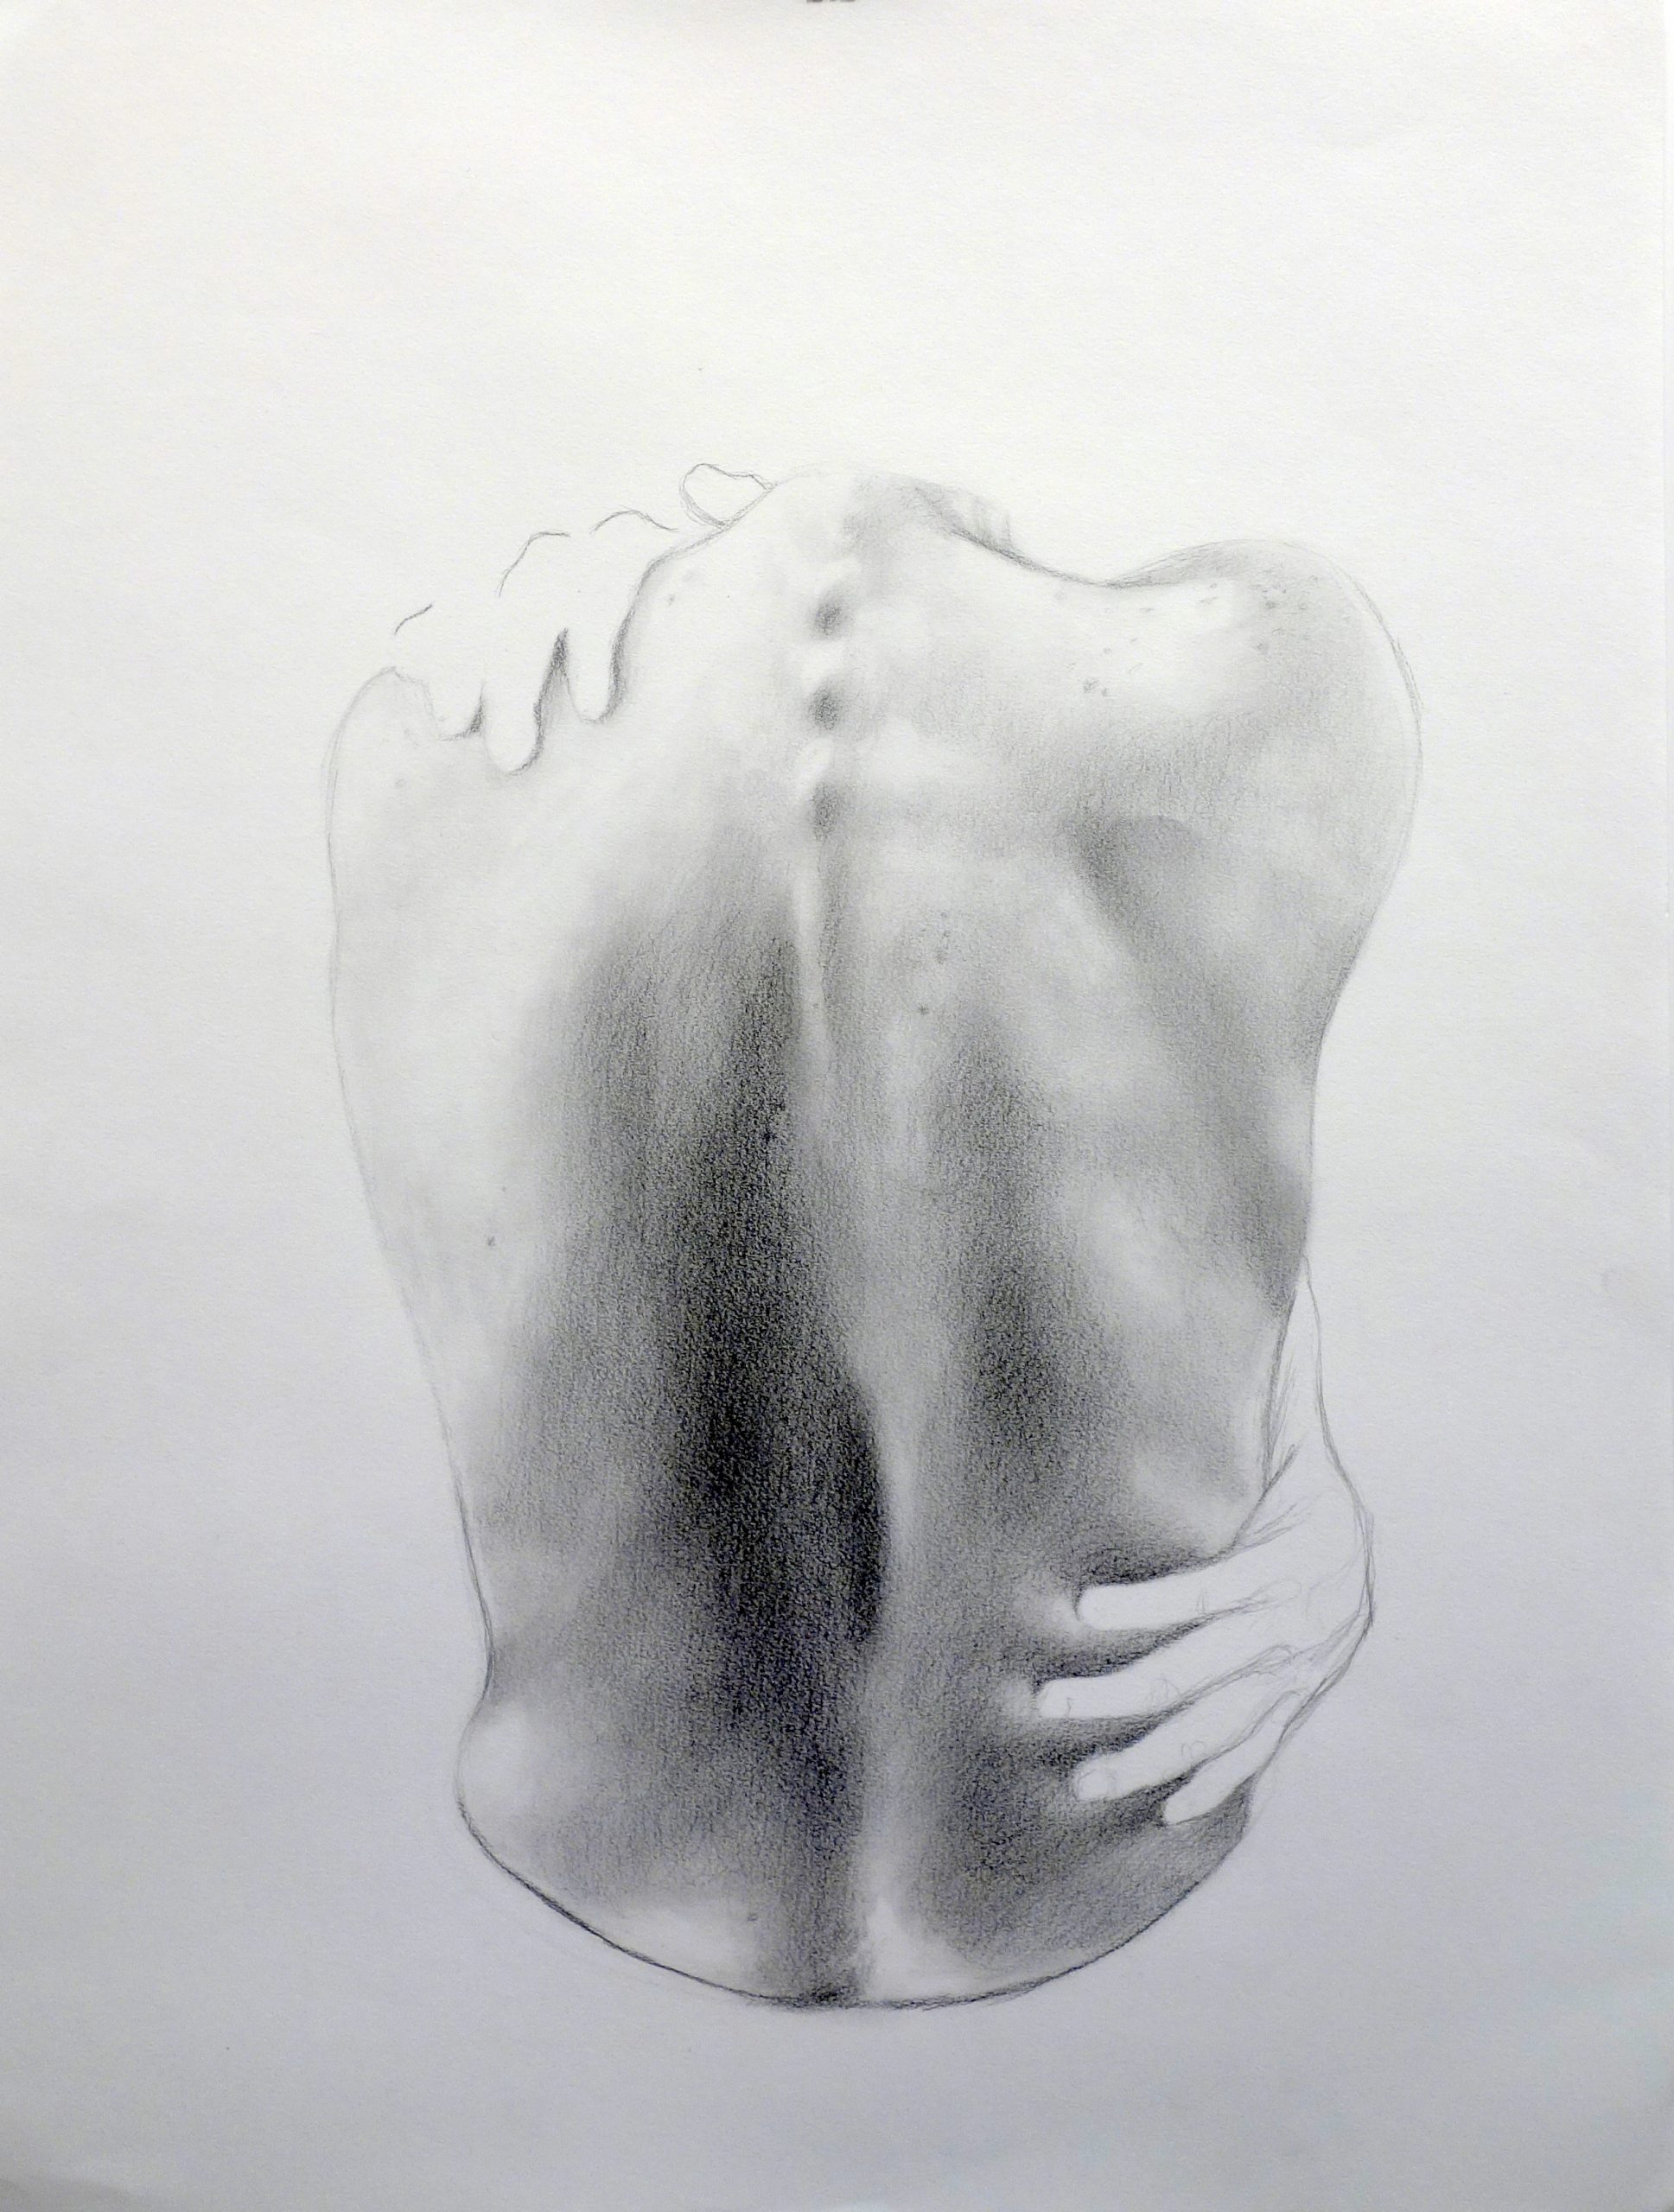 Lilli Cameron, Disconnected III, 2019. Graphite on paper.